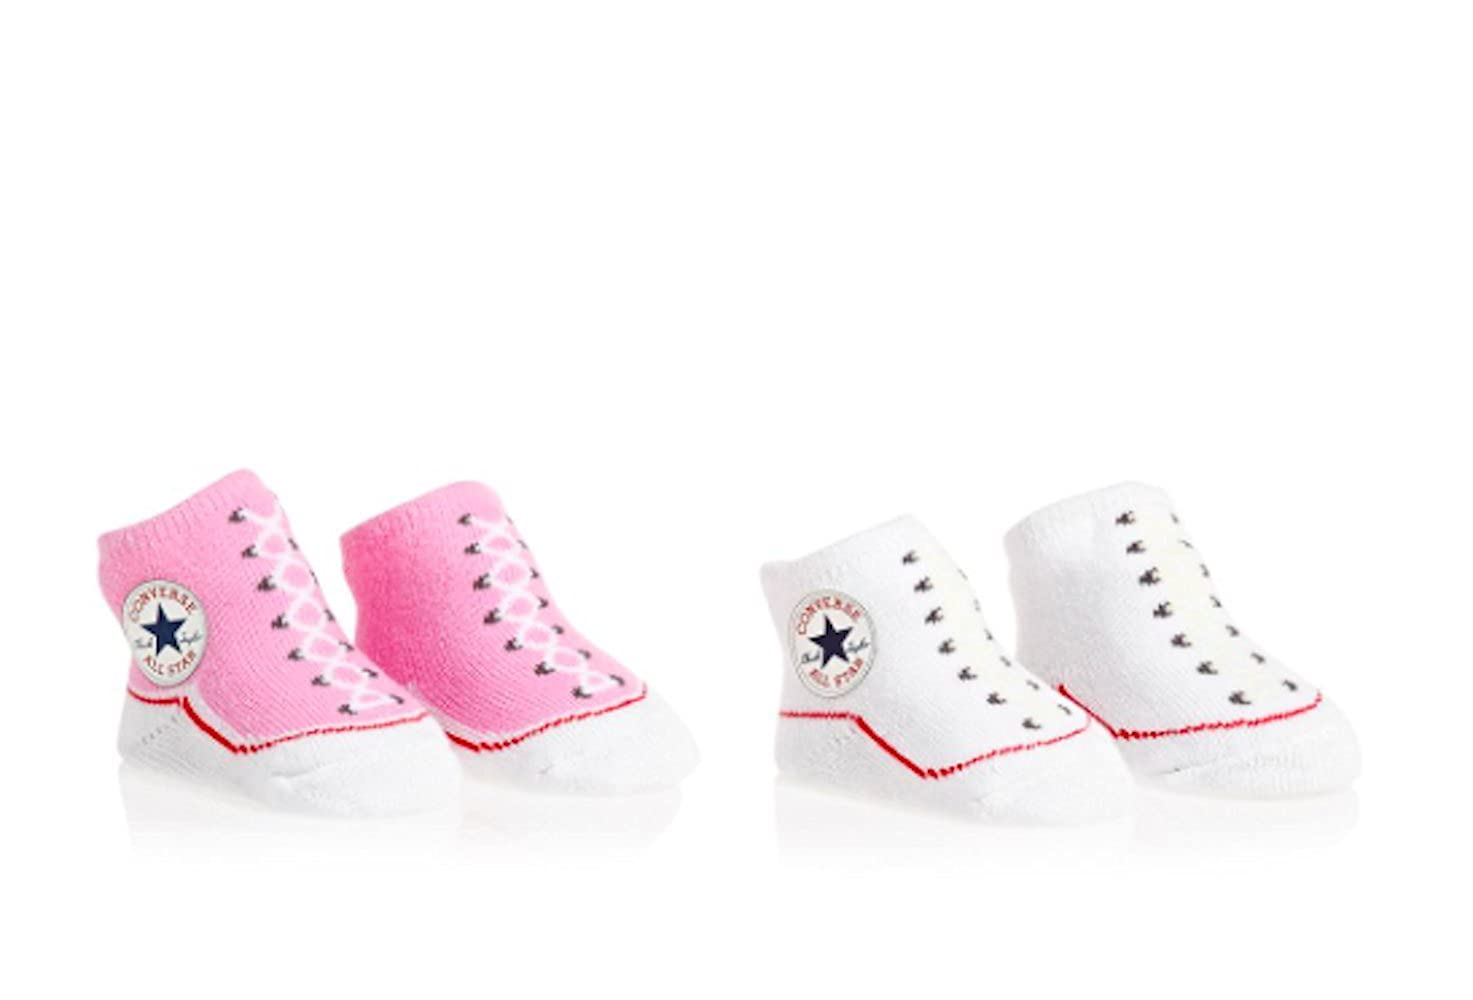 Converse Infant Pink & White Knitted Booties